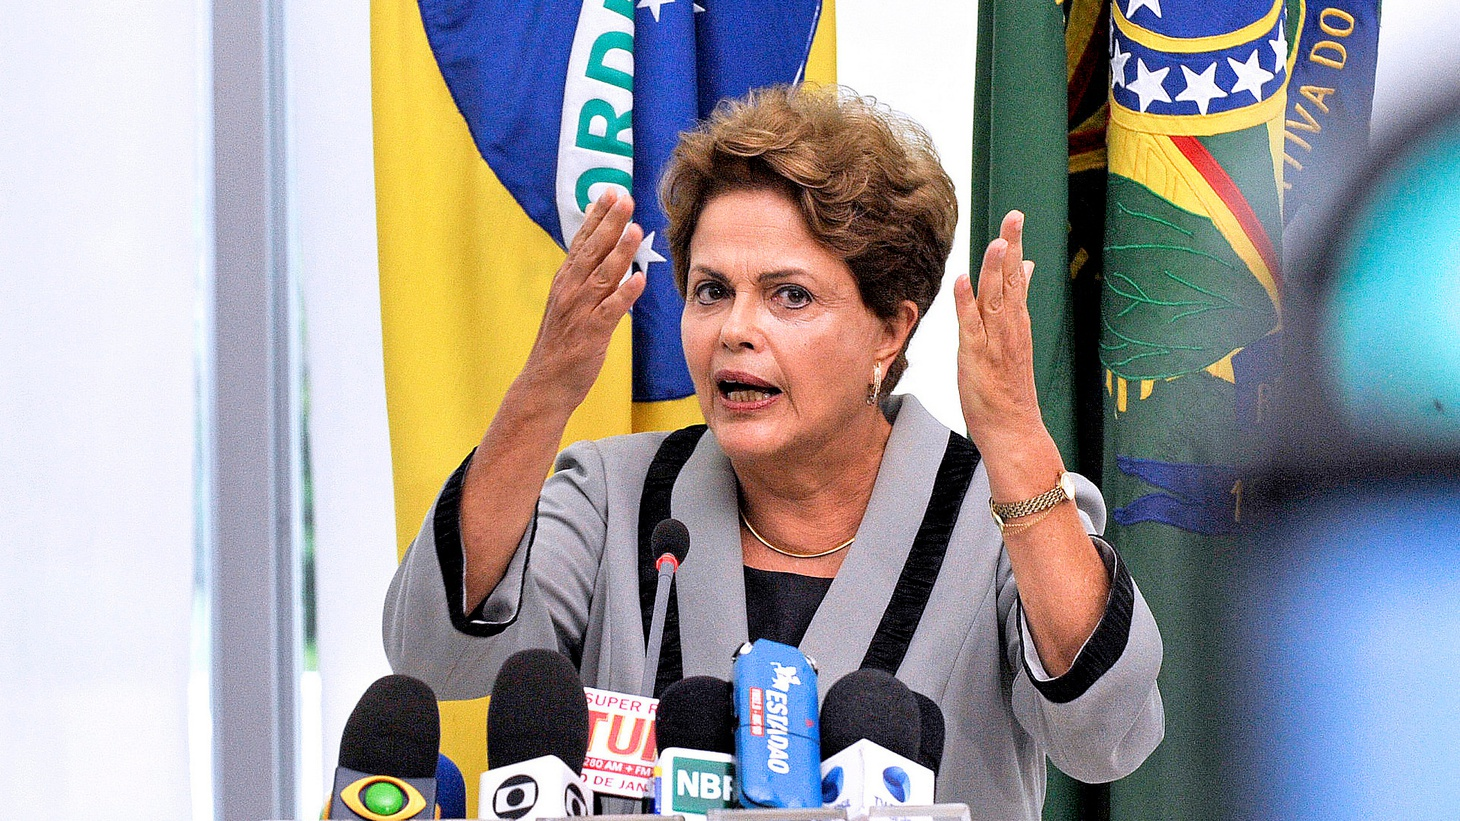 Just months before the Olympics, the President of Brazil is a step closer to being impeached — by other politicians arguably more corrupt than she is.